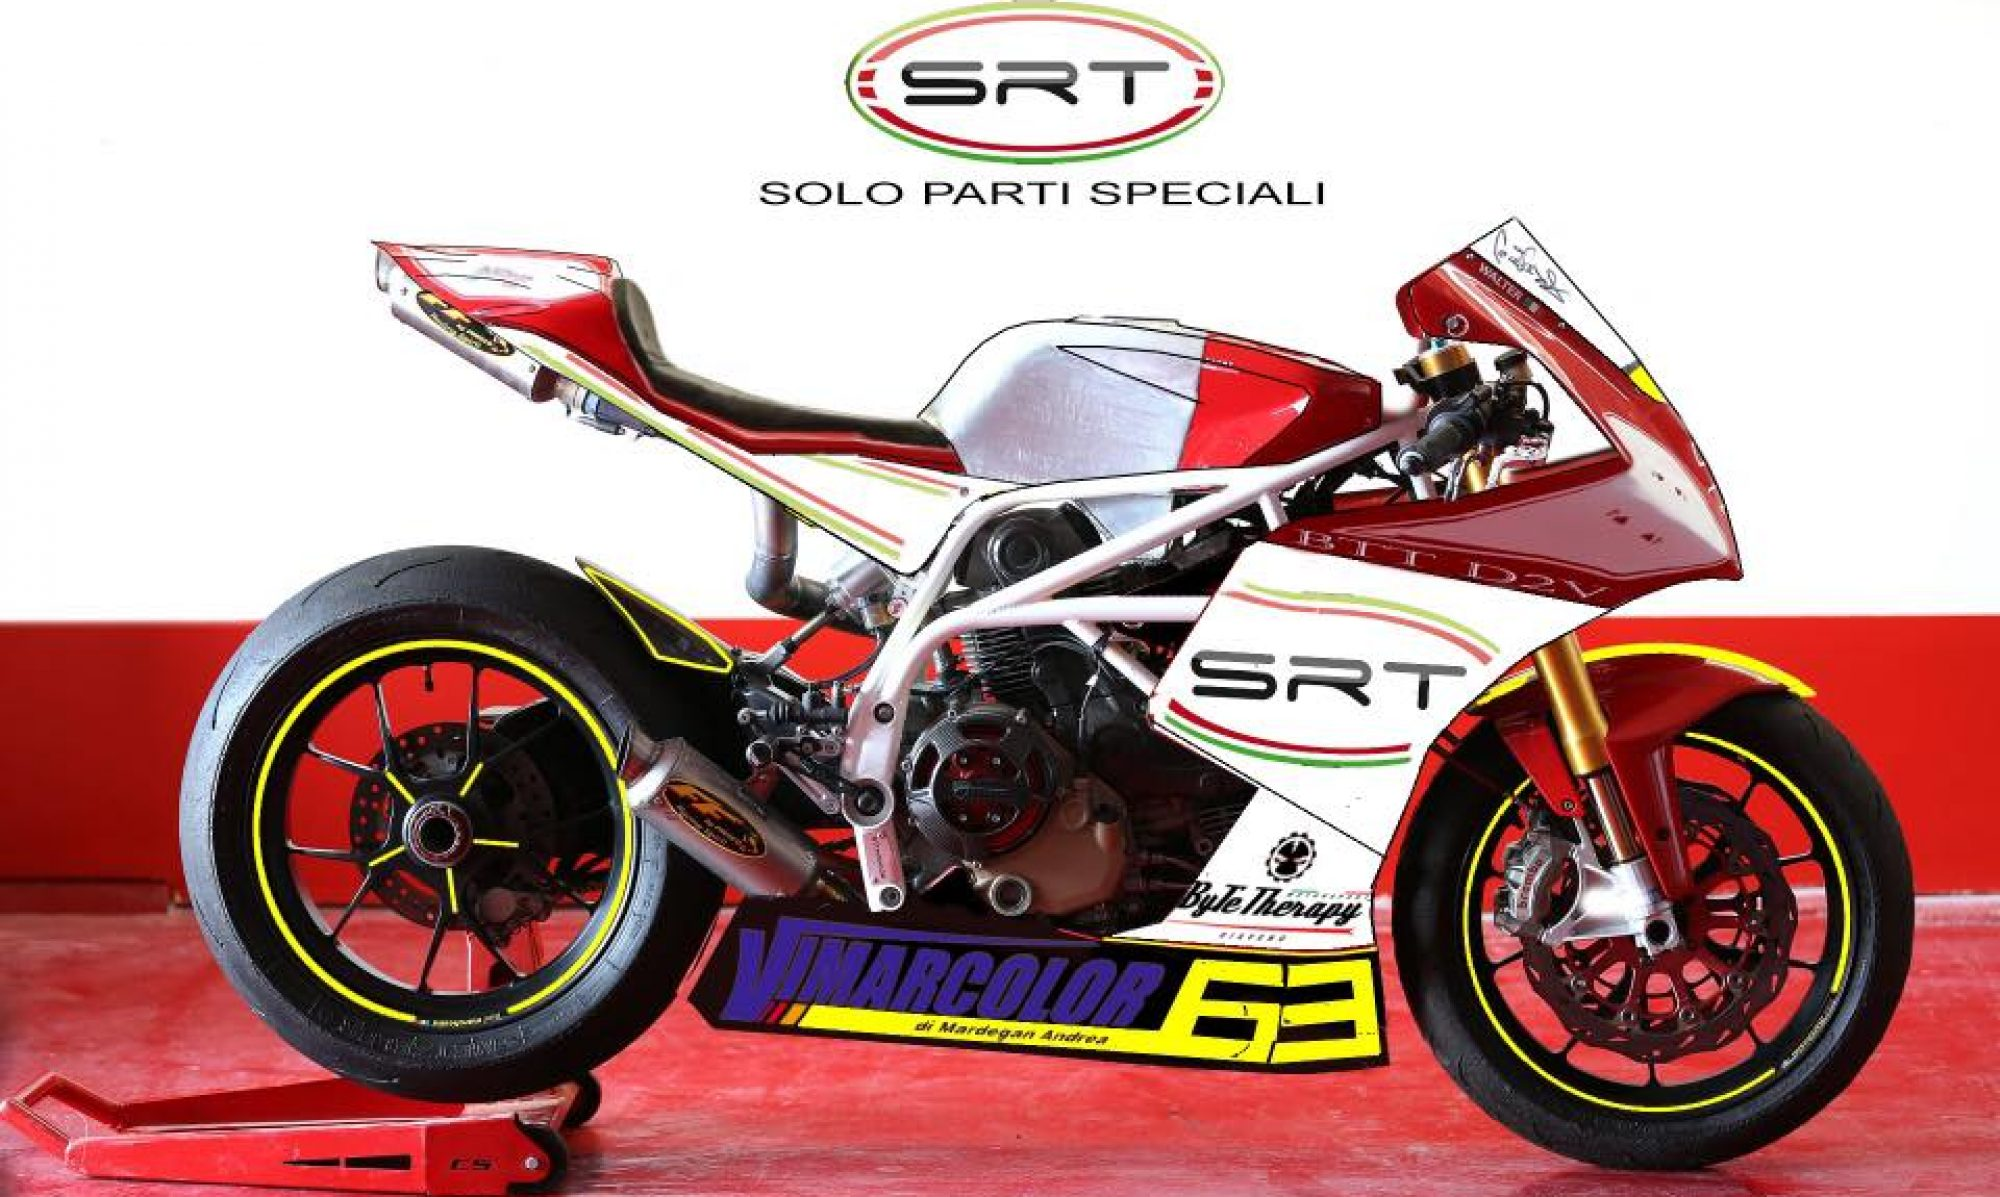 SRT Motorcycle